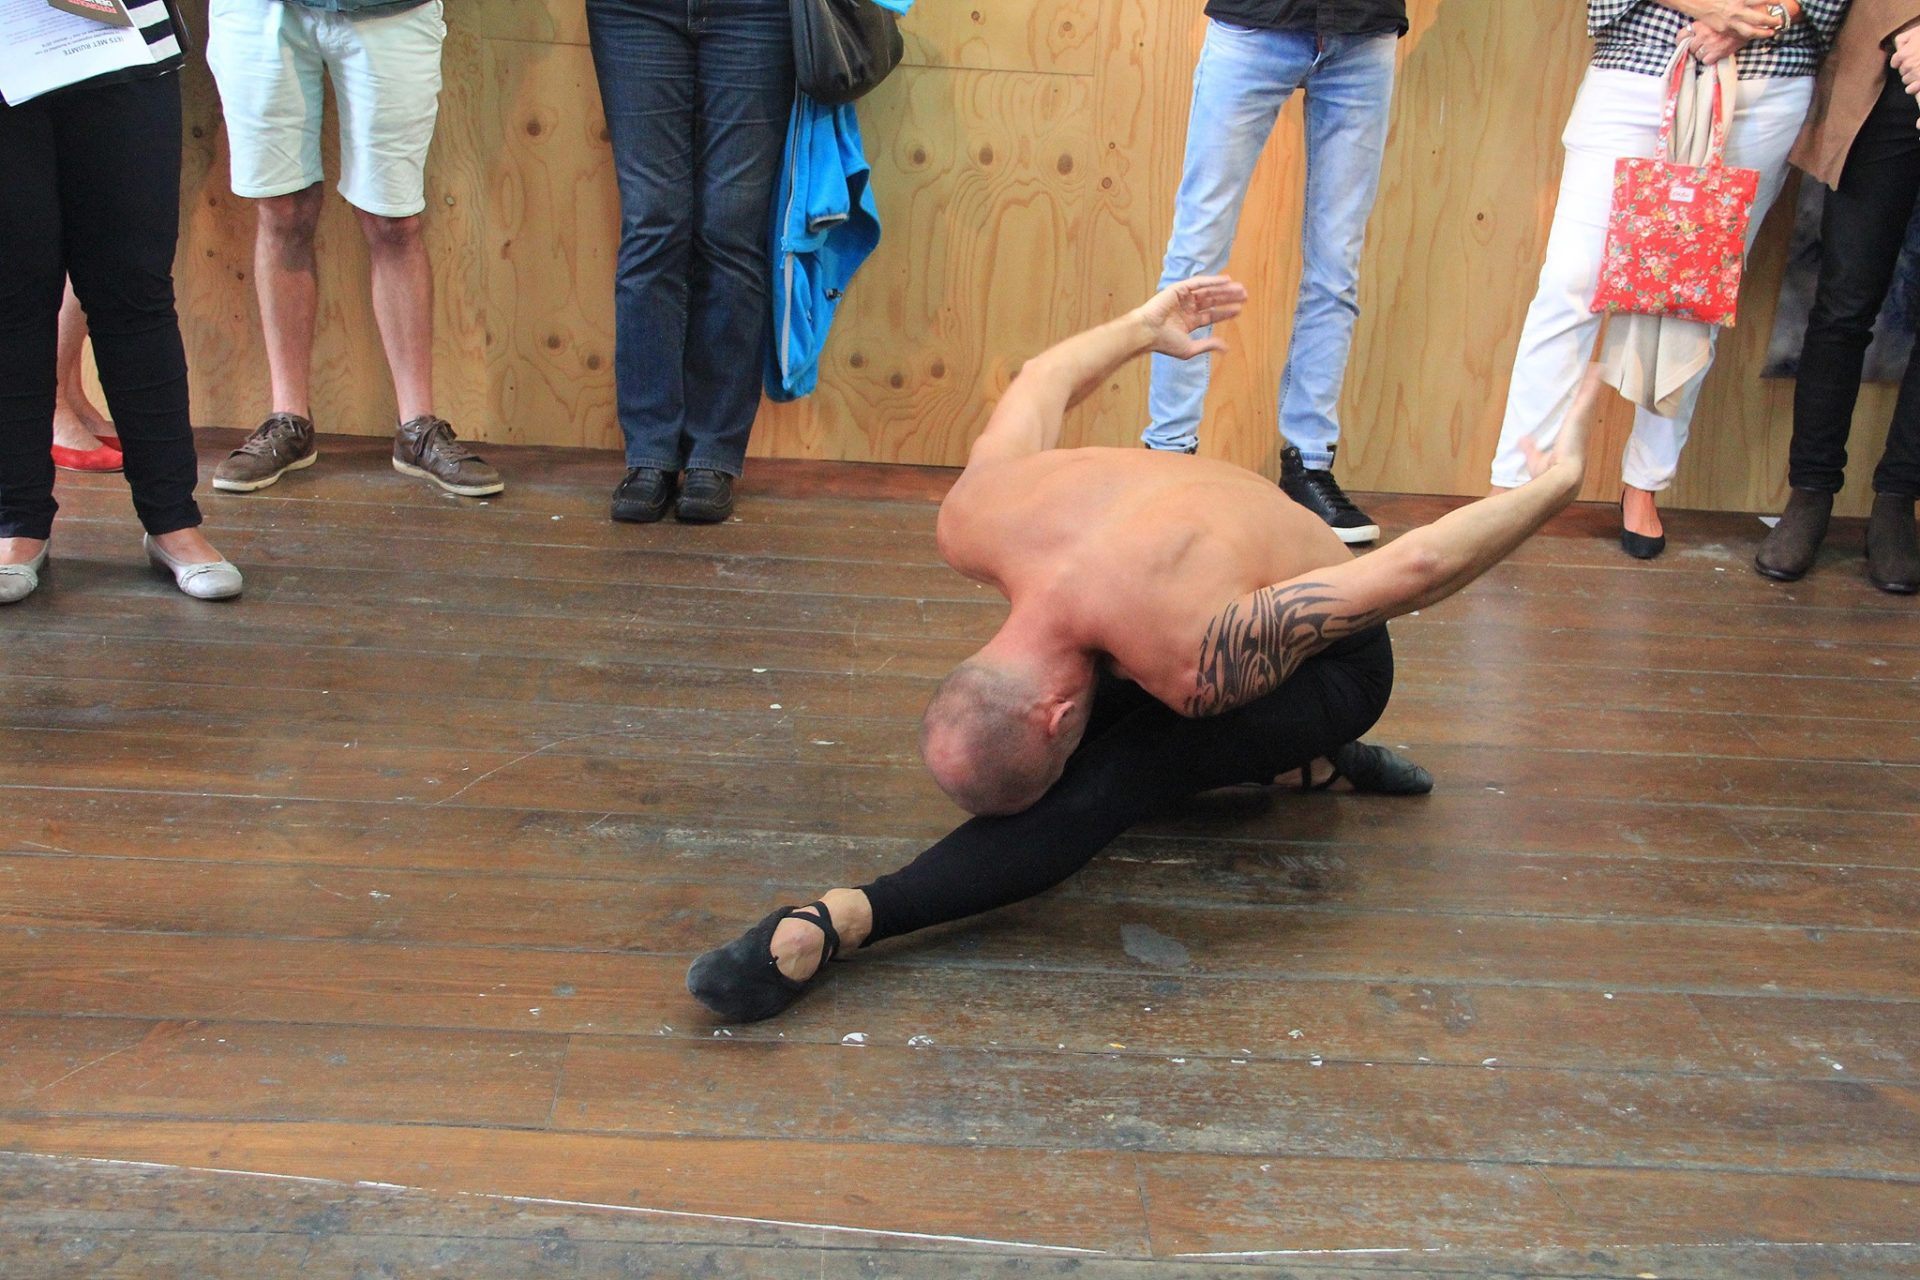 Performance at the opening in Kunsthal 45, Den Helder